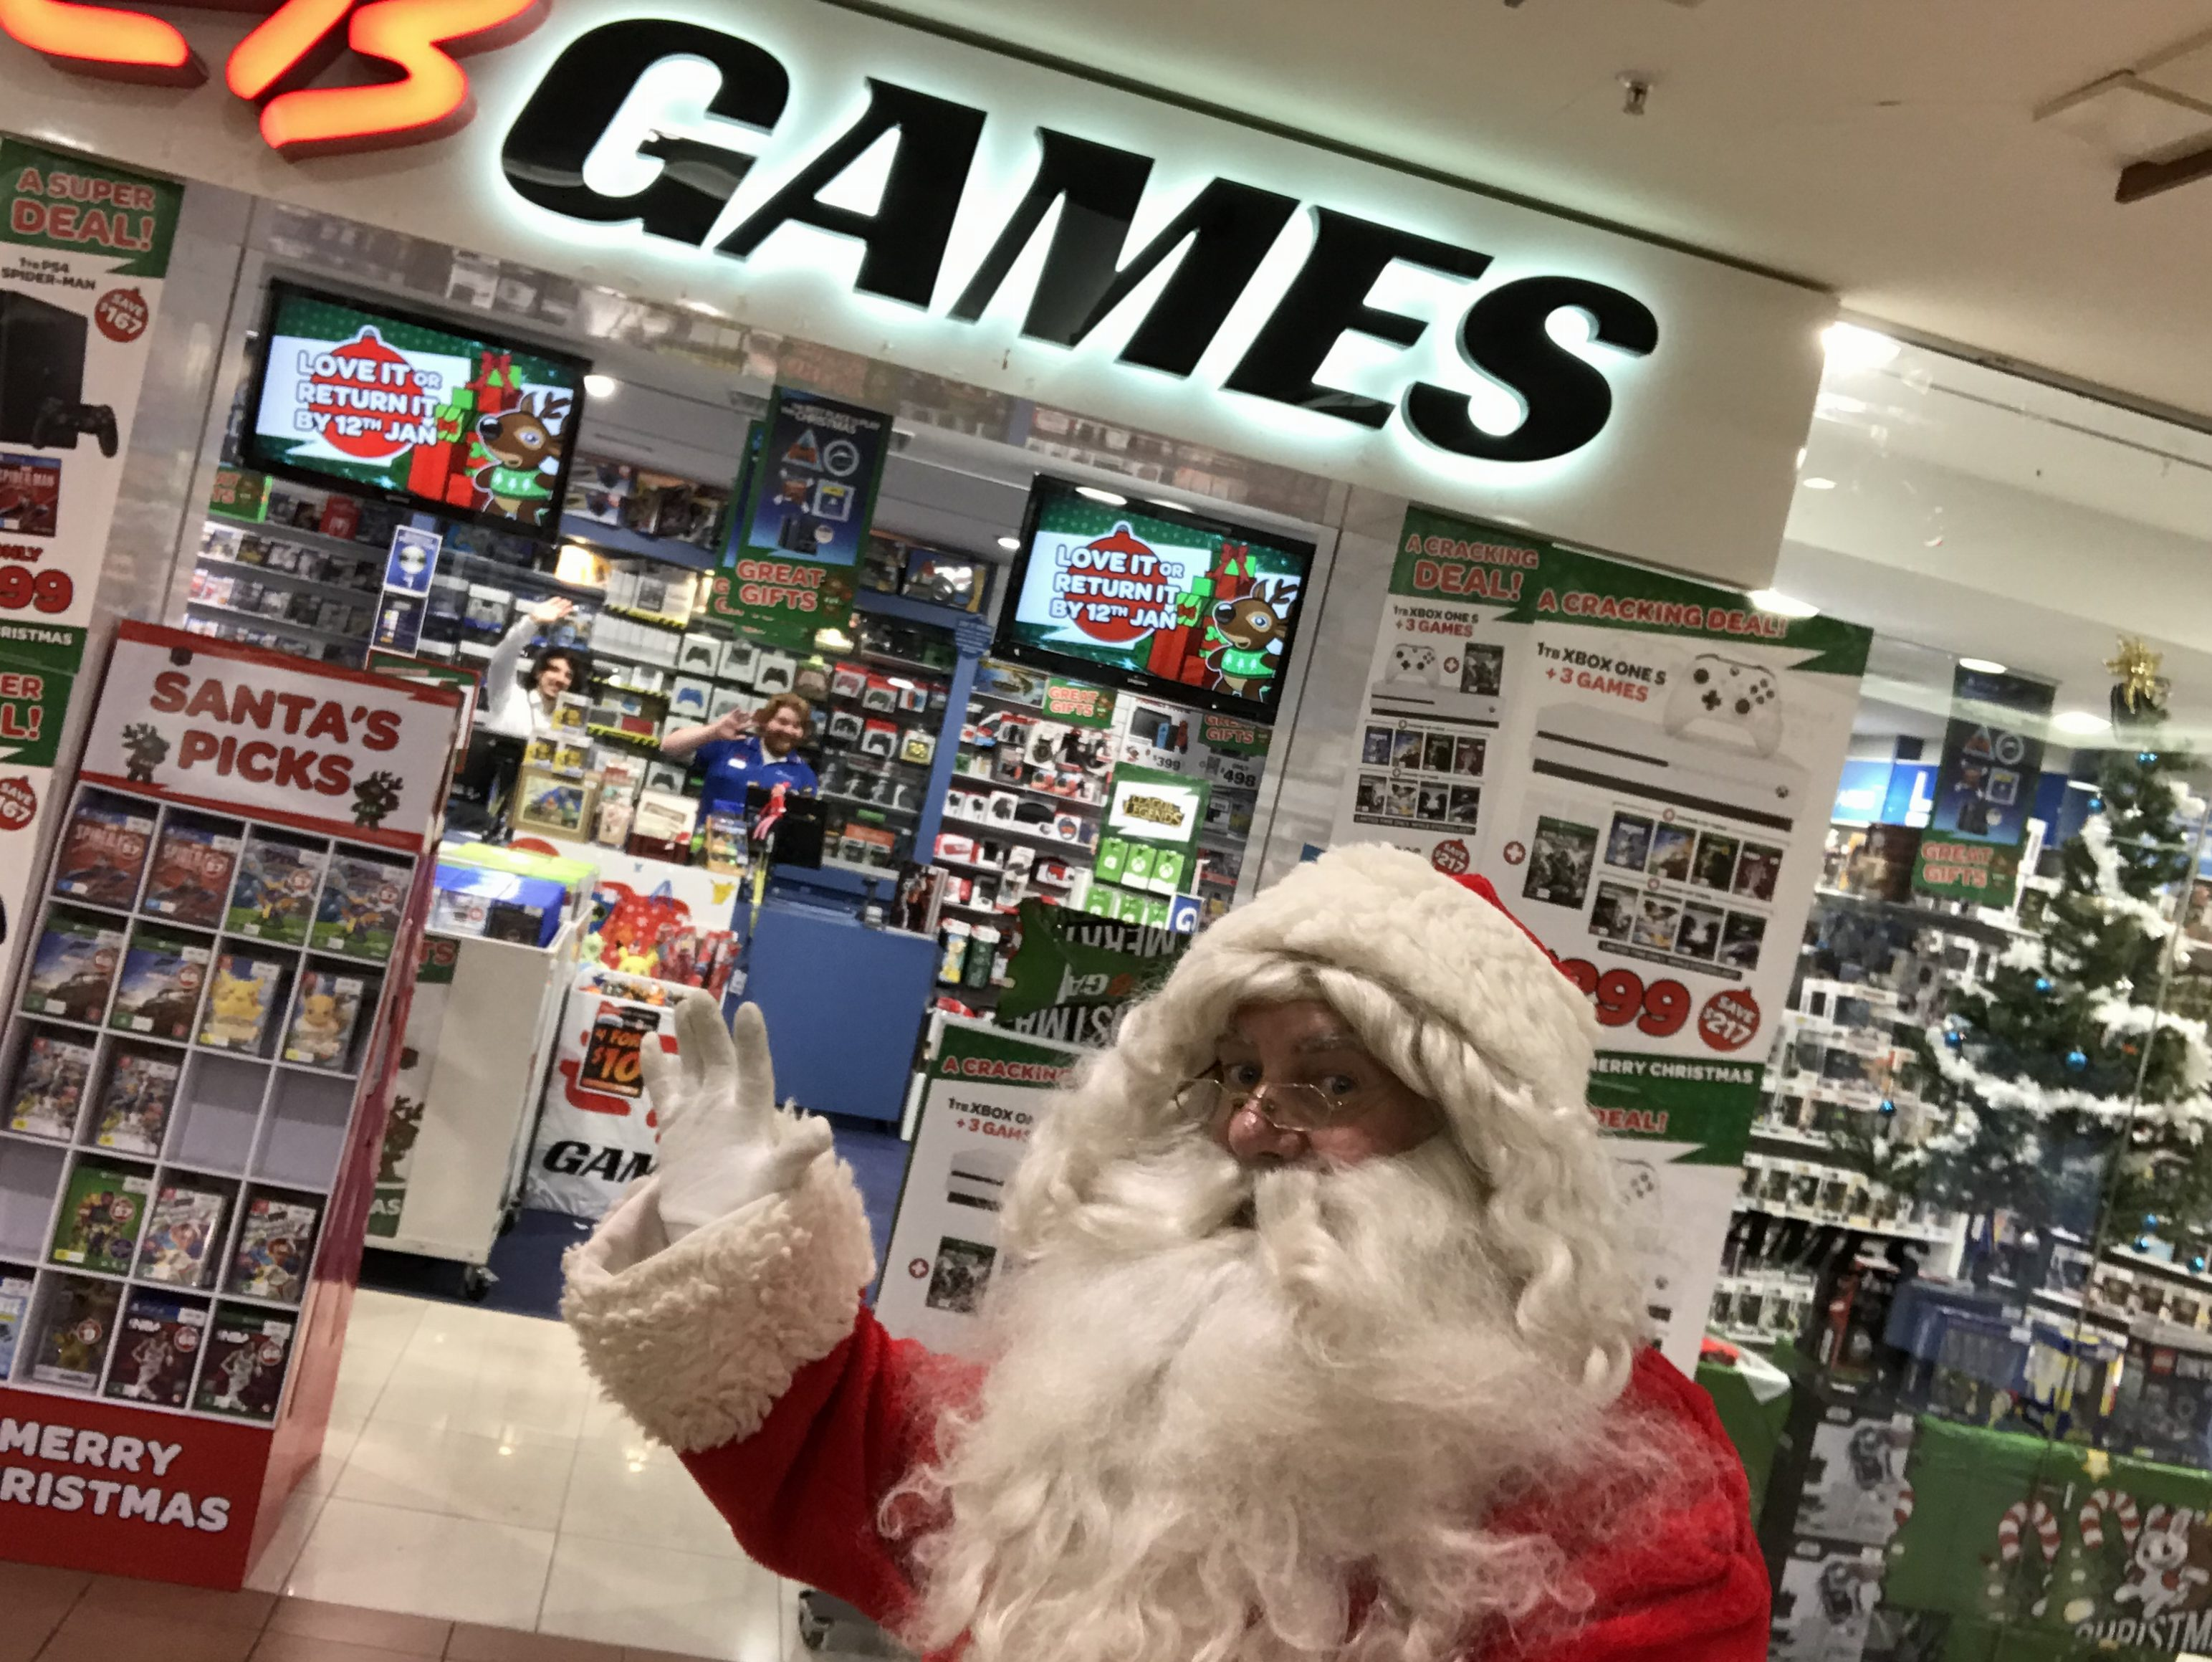 Santa's Elves have been busy at EB Games